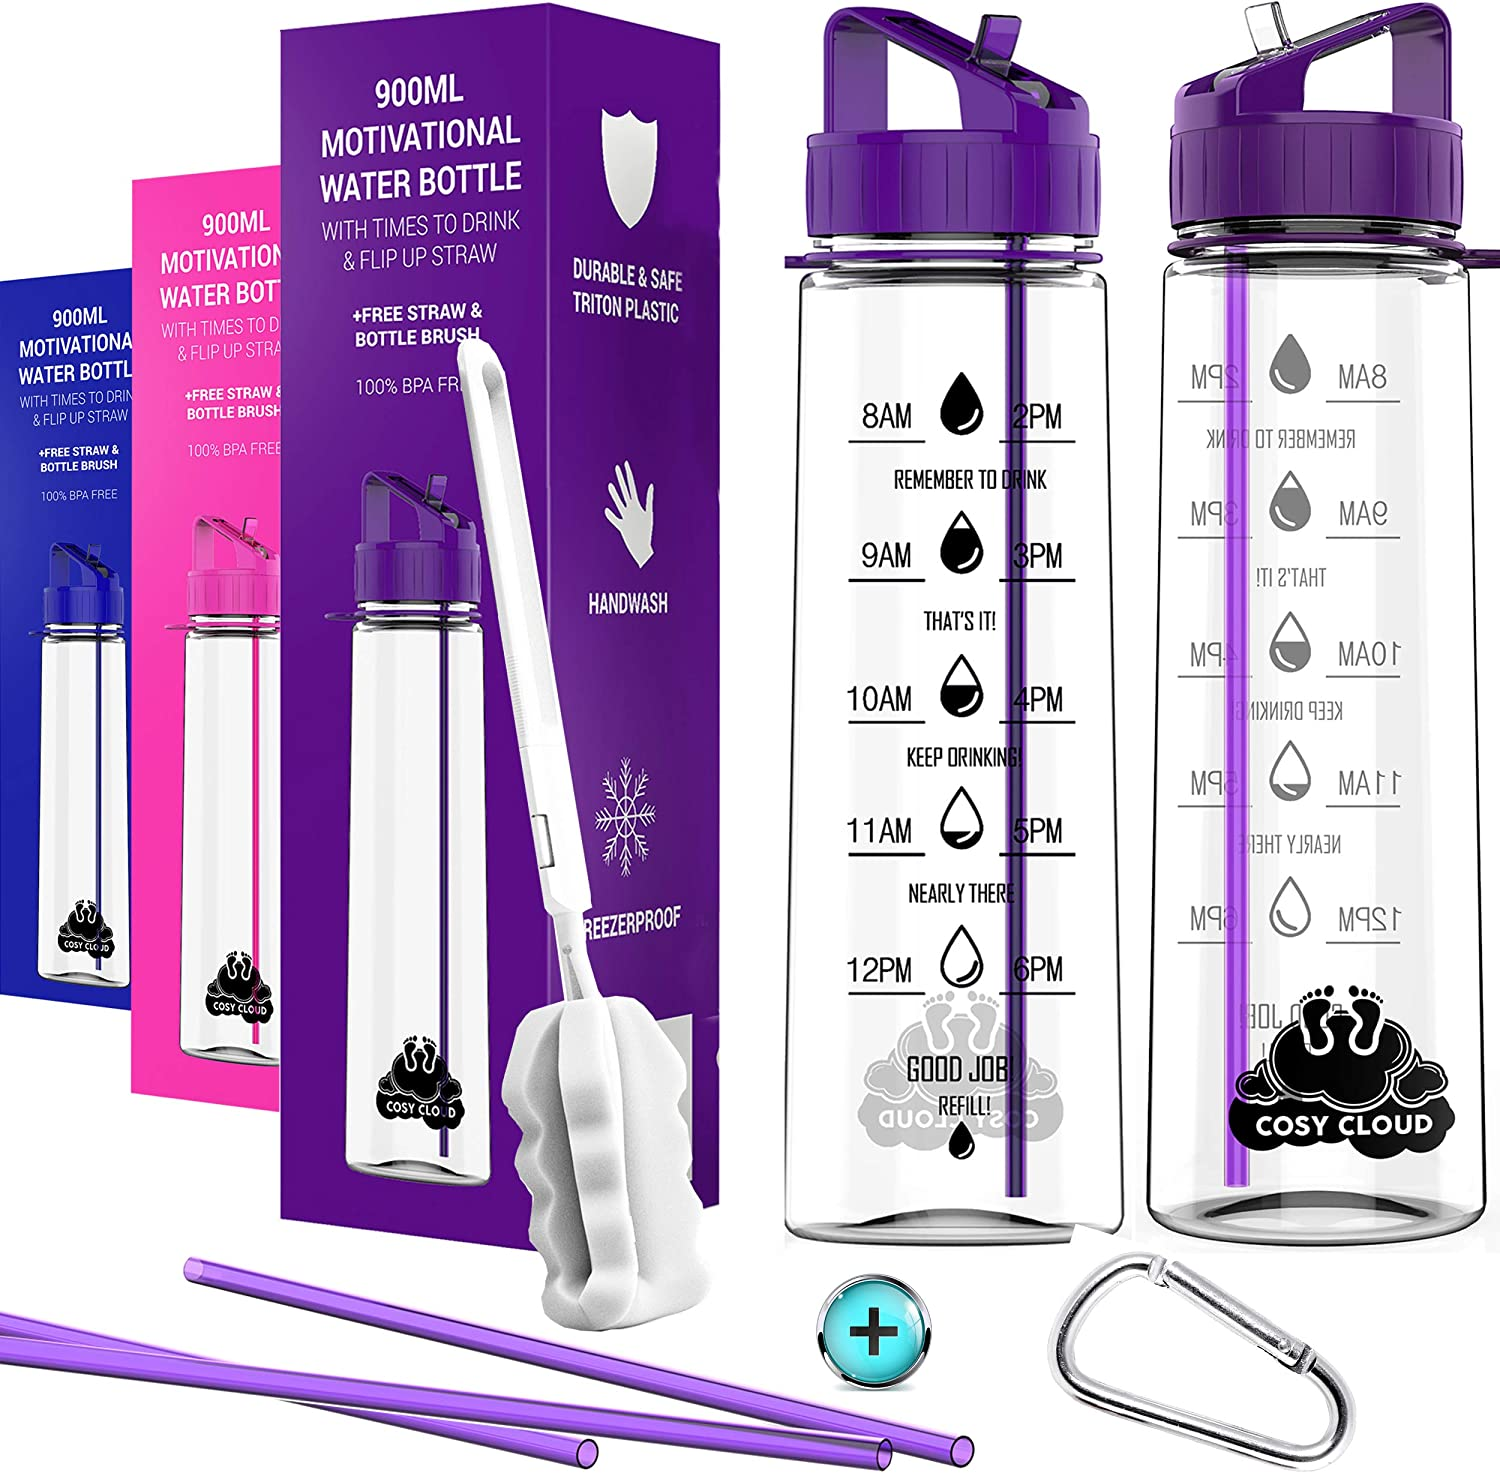 Water Bottle With Straw Motivational Water Bottles With Times To Drink Time Markings Measurements For Sports Gym Office Bpa Free Leak Proof Reusable Tritan Plastic Extra Straws Cleaning